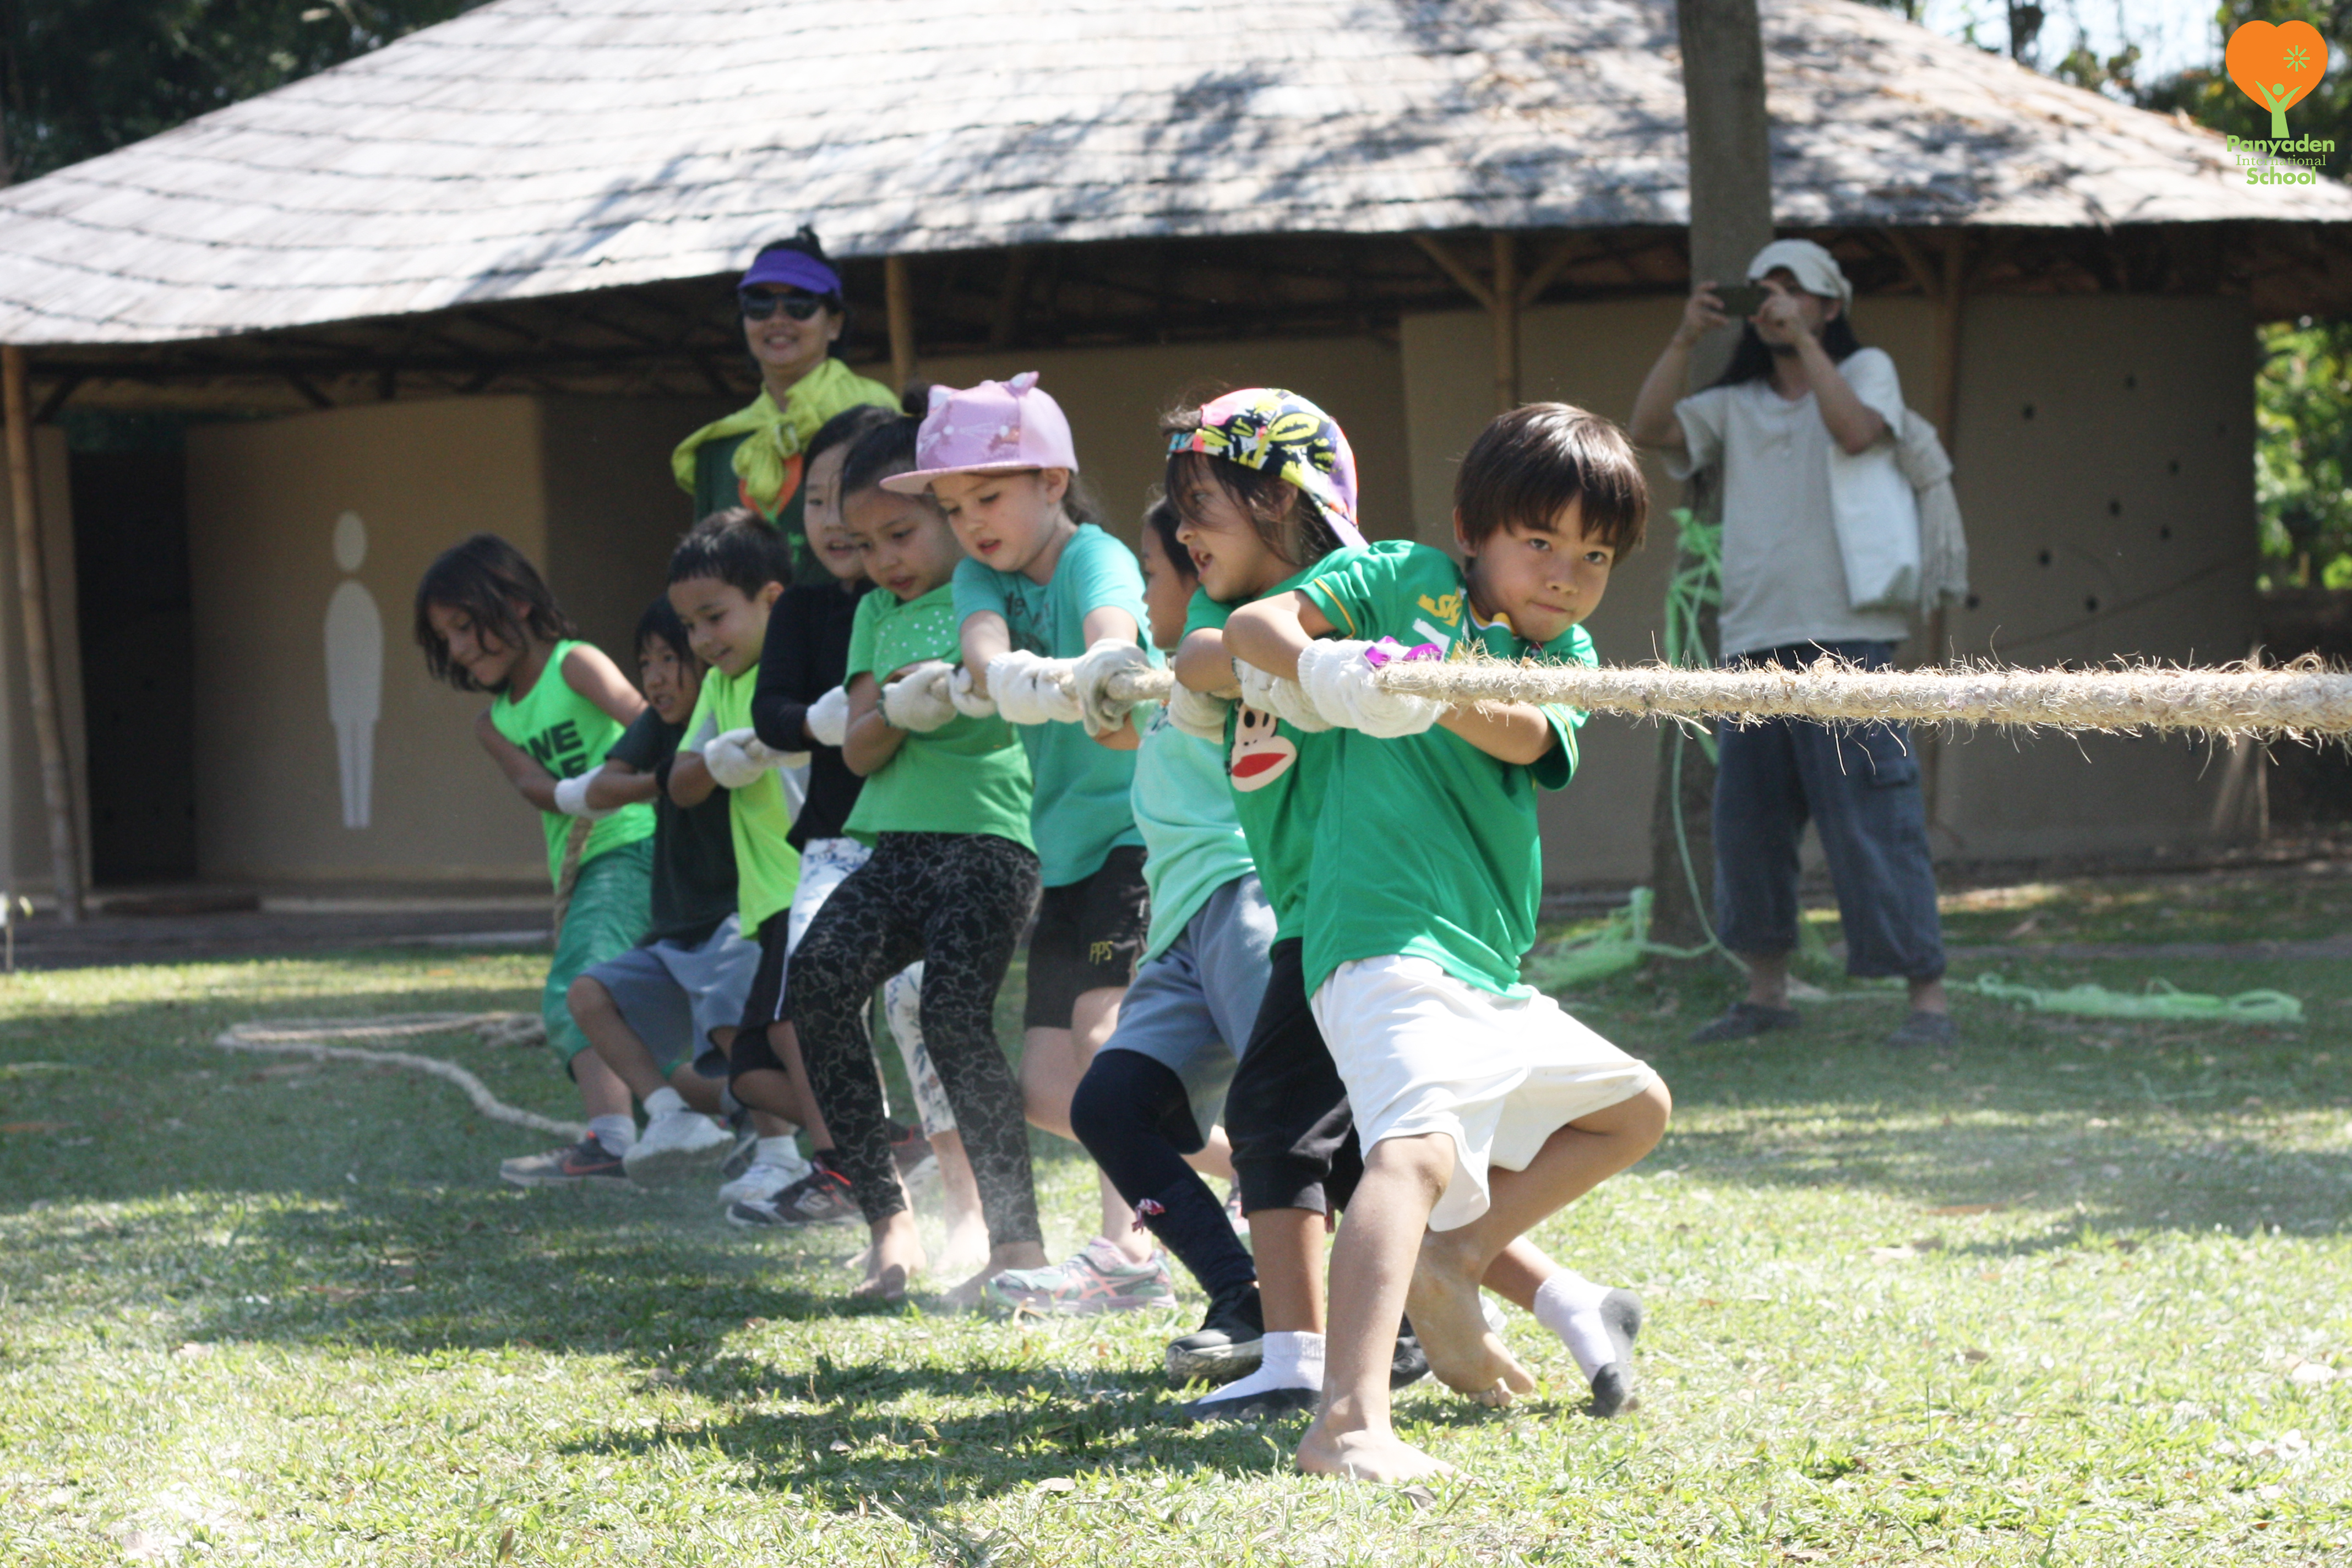 Tug-of-war, Panyaden International School Sports Day 2017